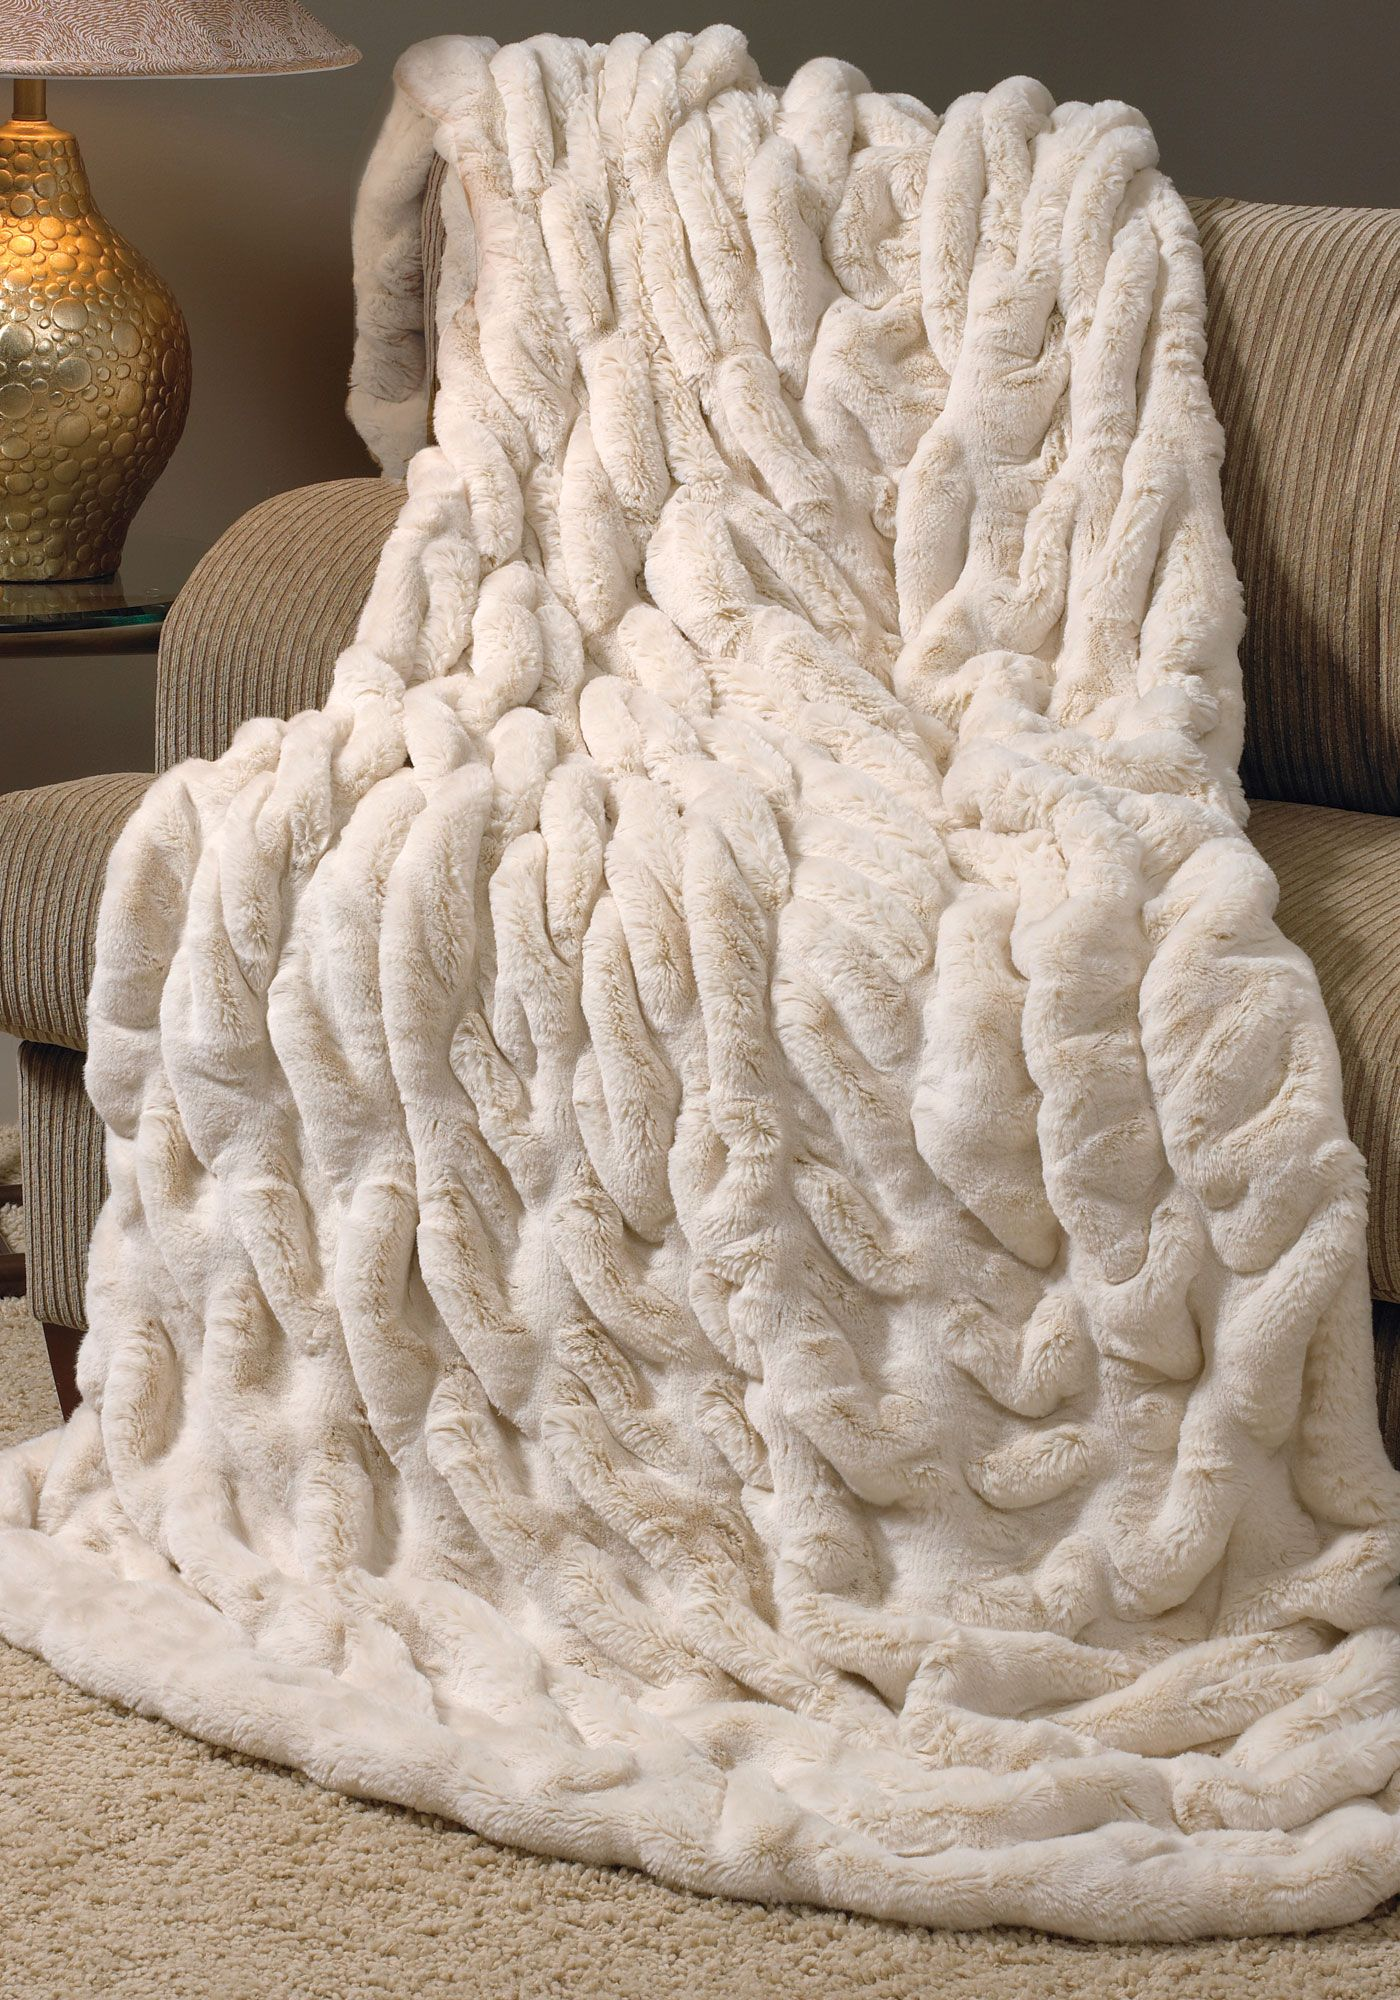 Sofa Cover Ivory Mink Couture Faux Fur Throw Blankets